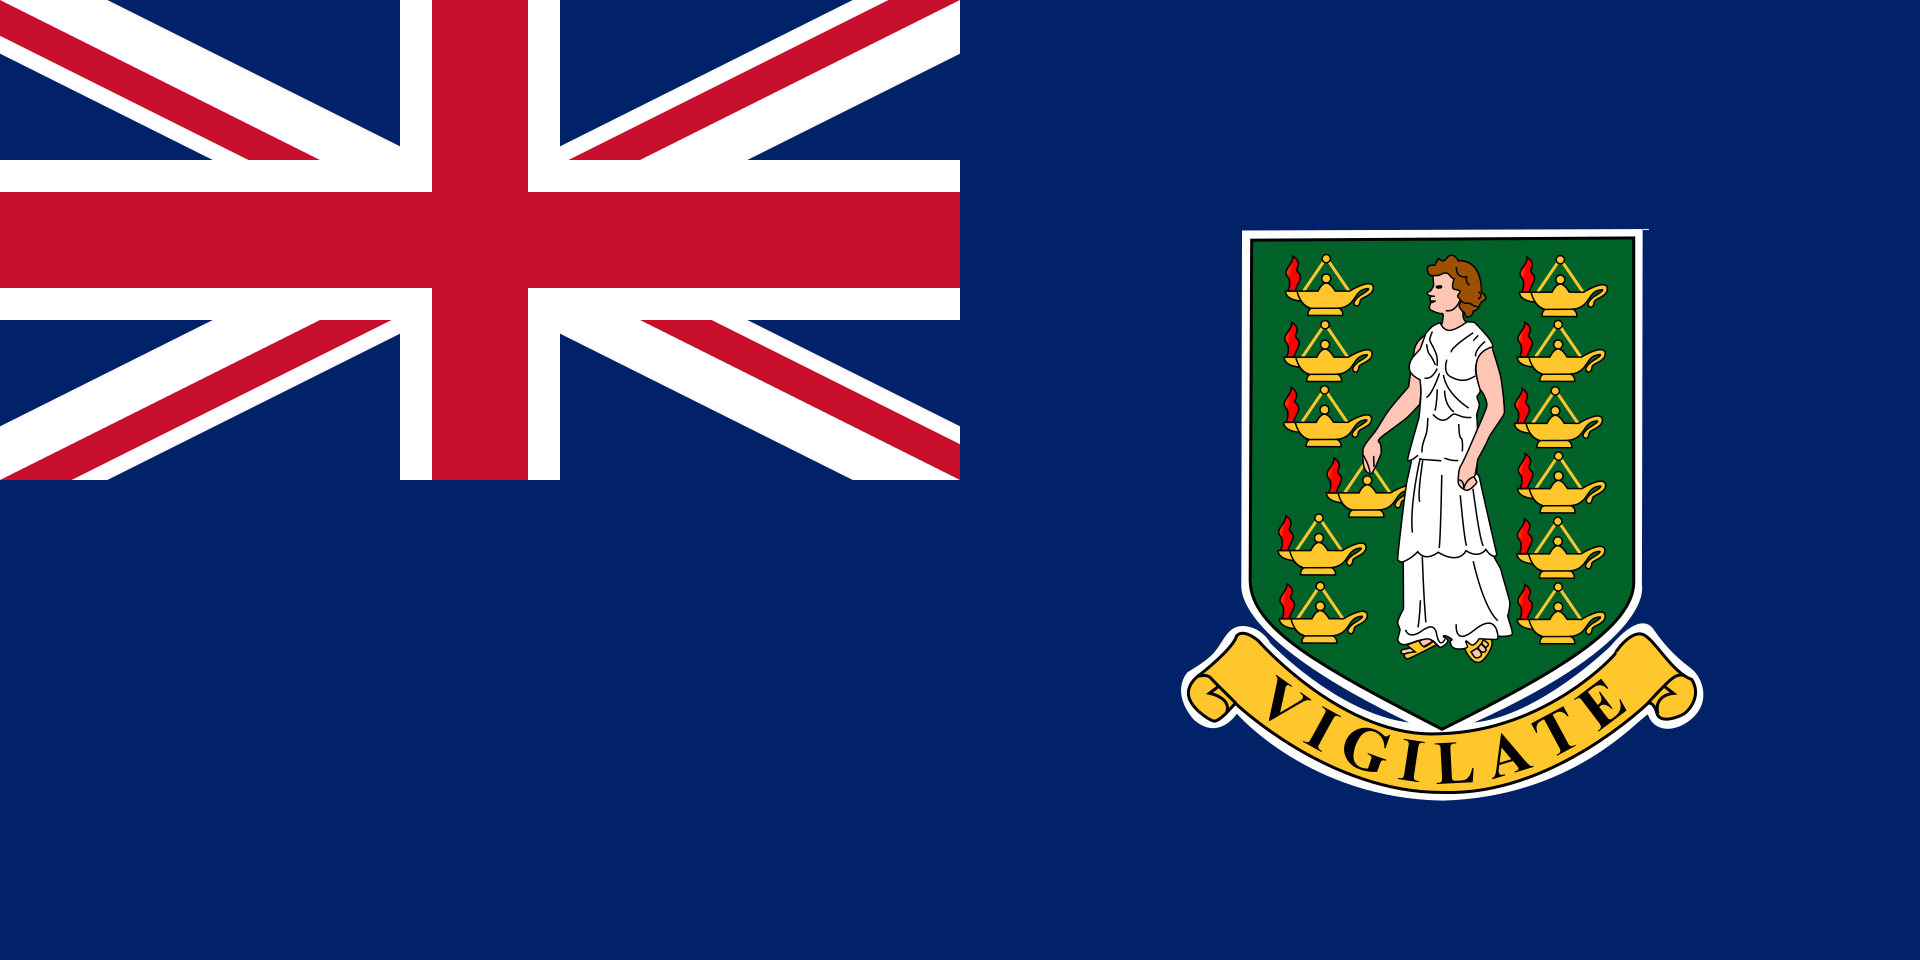 Chemical-Free British Virgin Islands Pool Dealer Flag